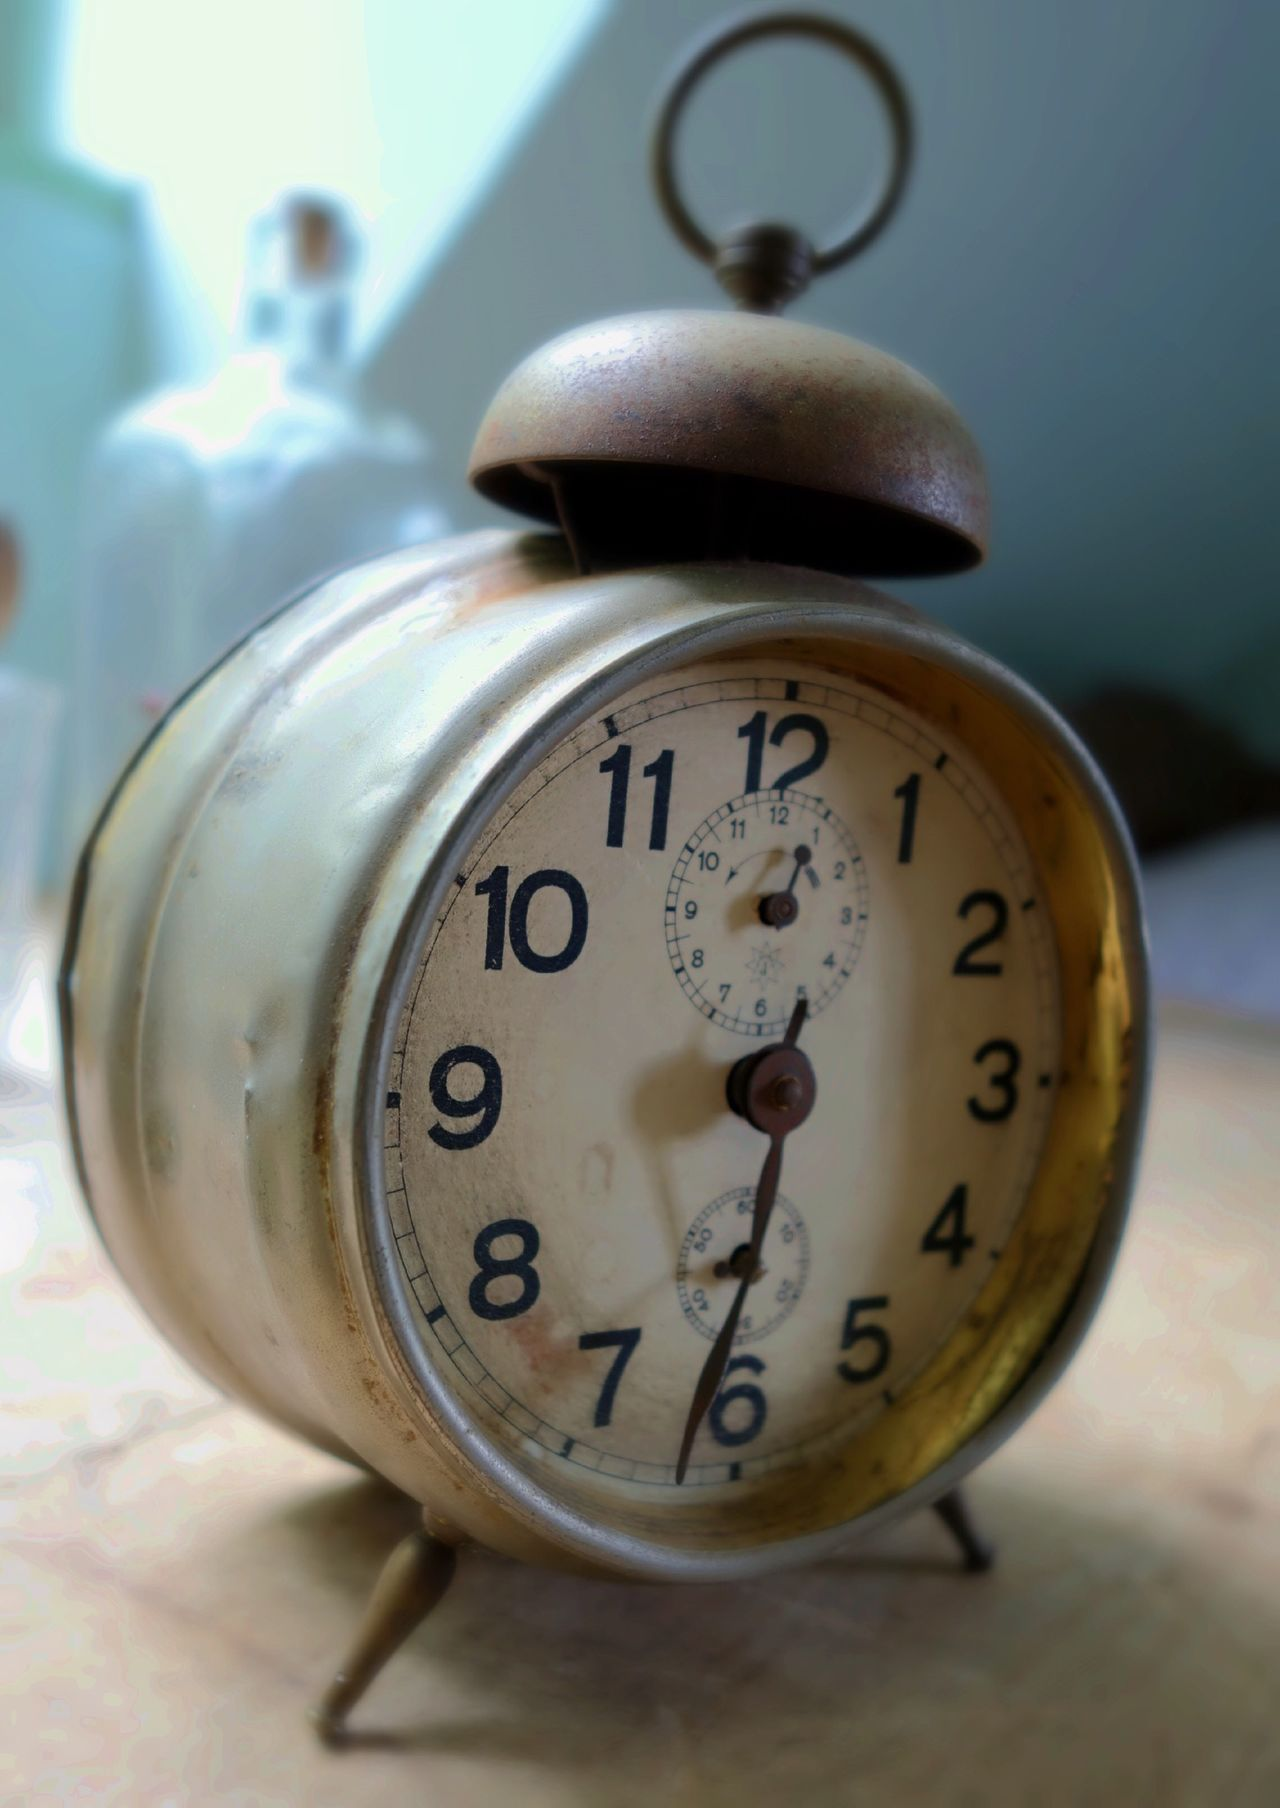 Alarm Clock, Clock, Clock Face, Close-Up, Focus On Foreground